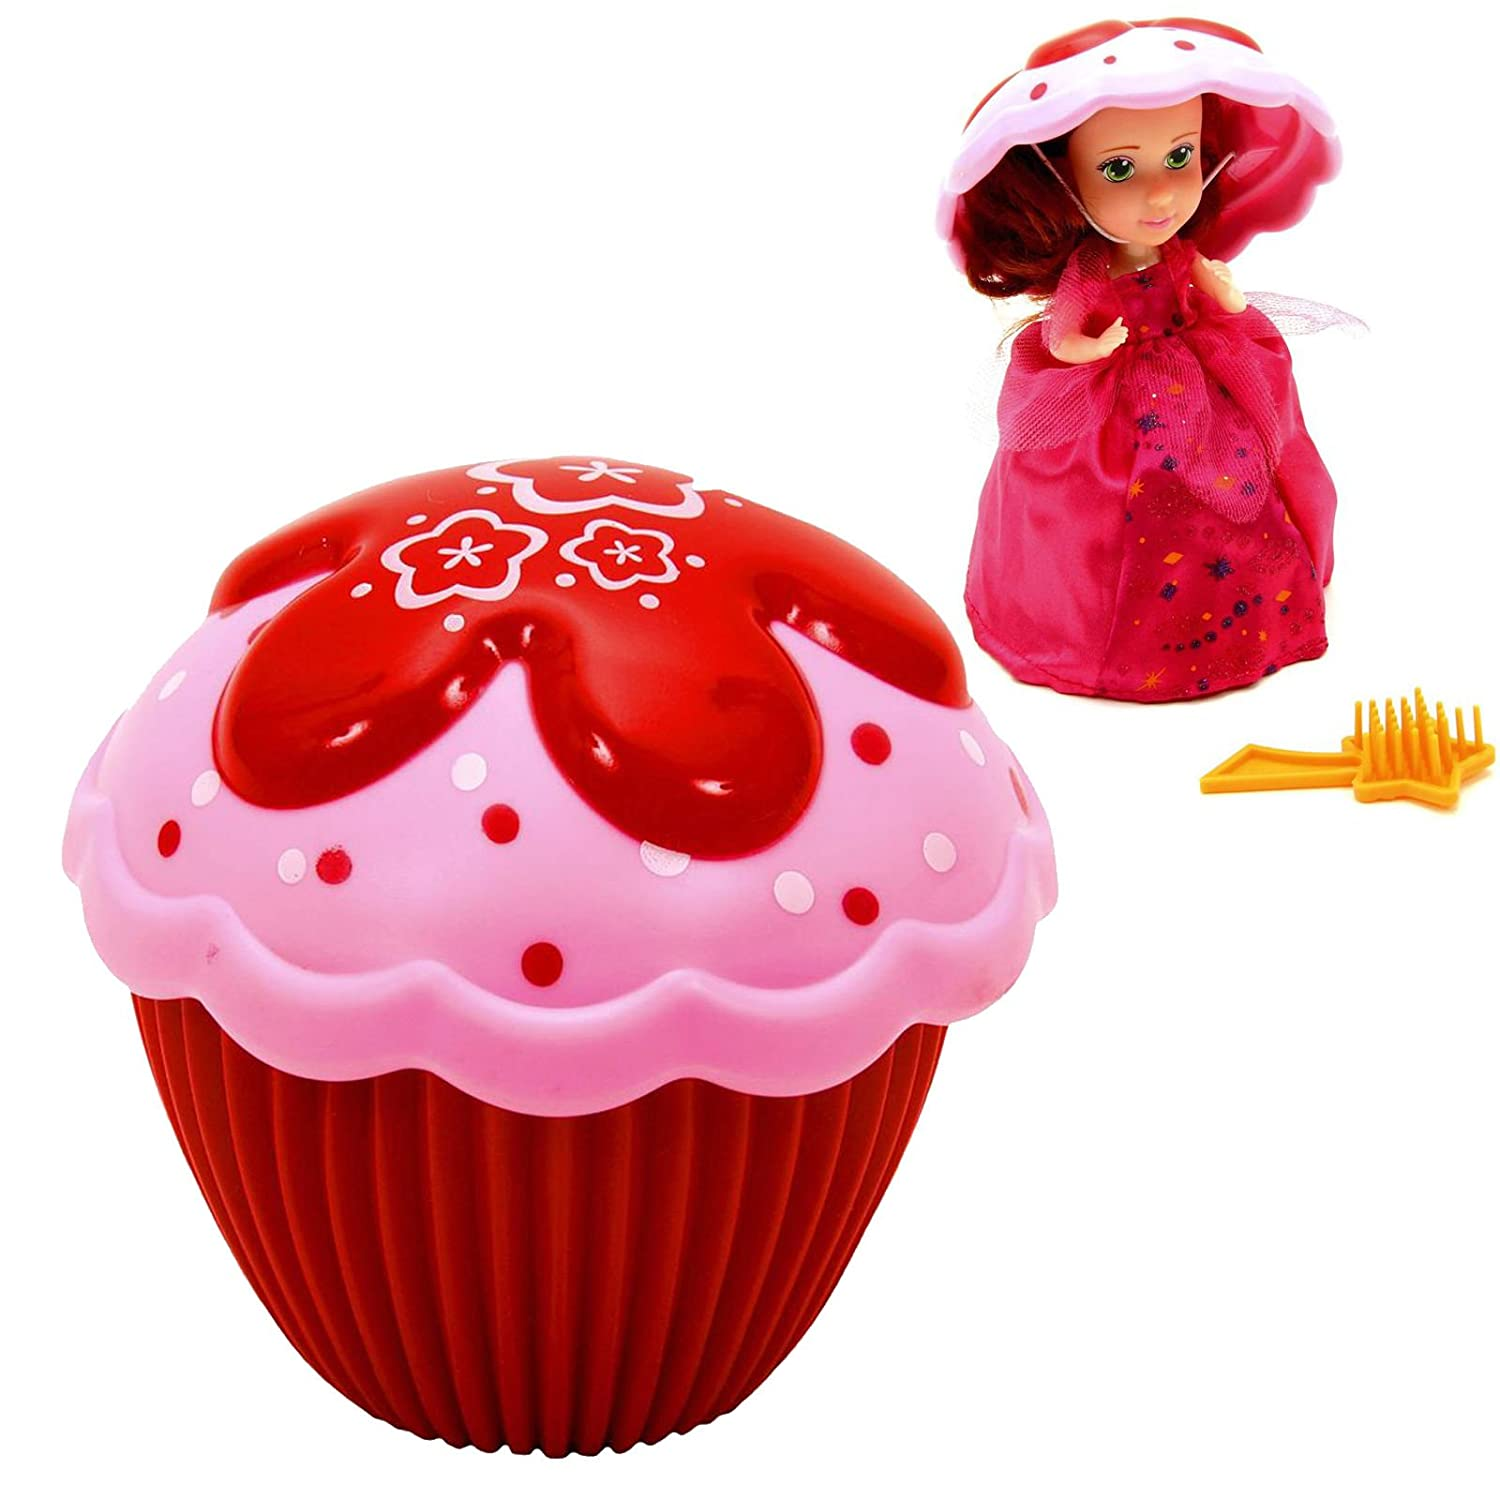 Cupcake Surprise Scented Princess Doll (Colors & Styles May Vary),